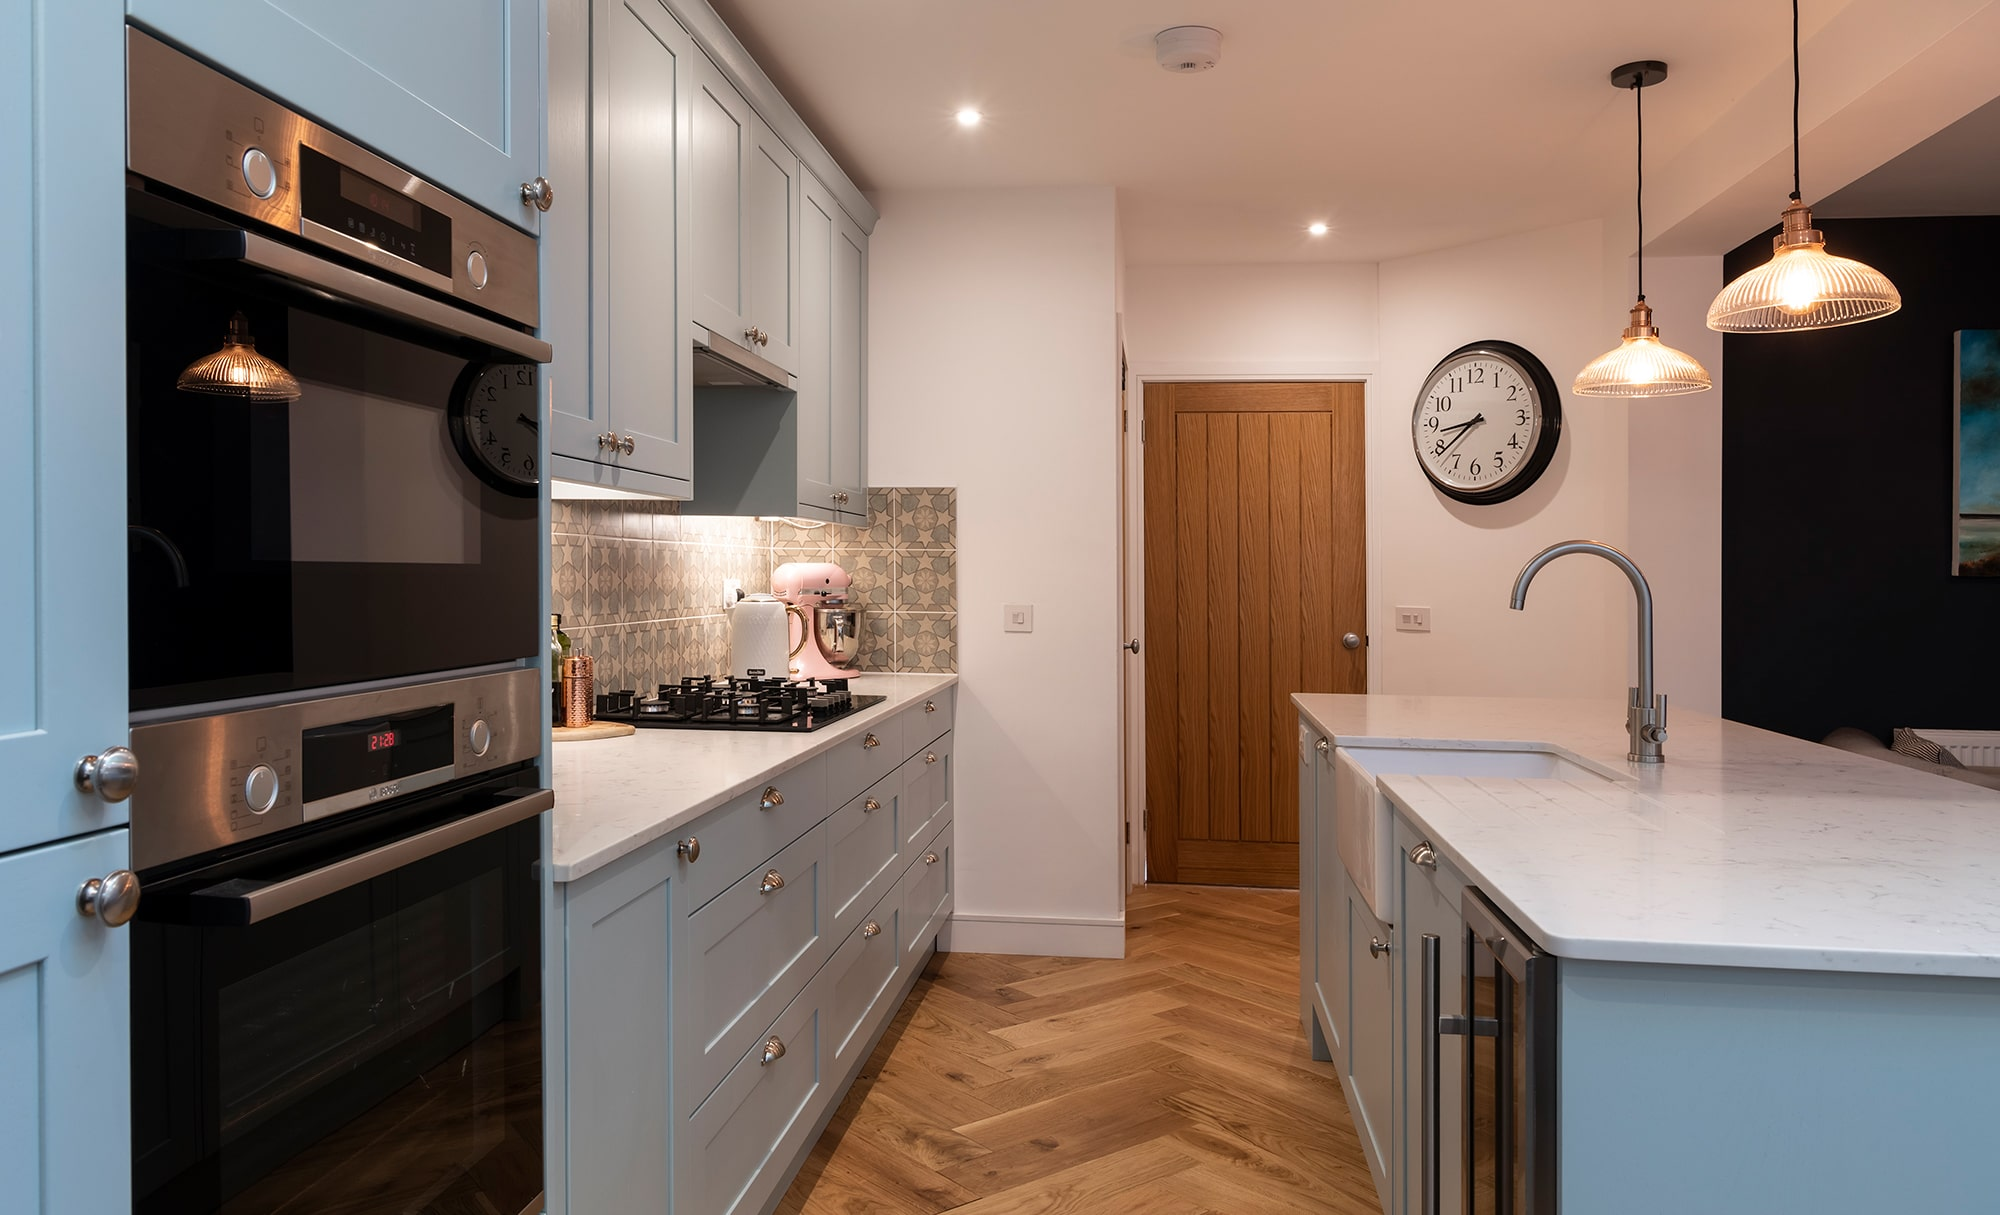 Aldana Shaker Kitchen for a home in Portishead by Portishead Kitchens sink area